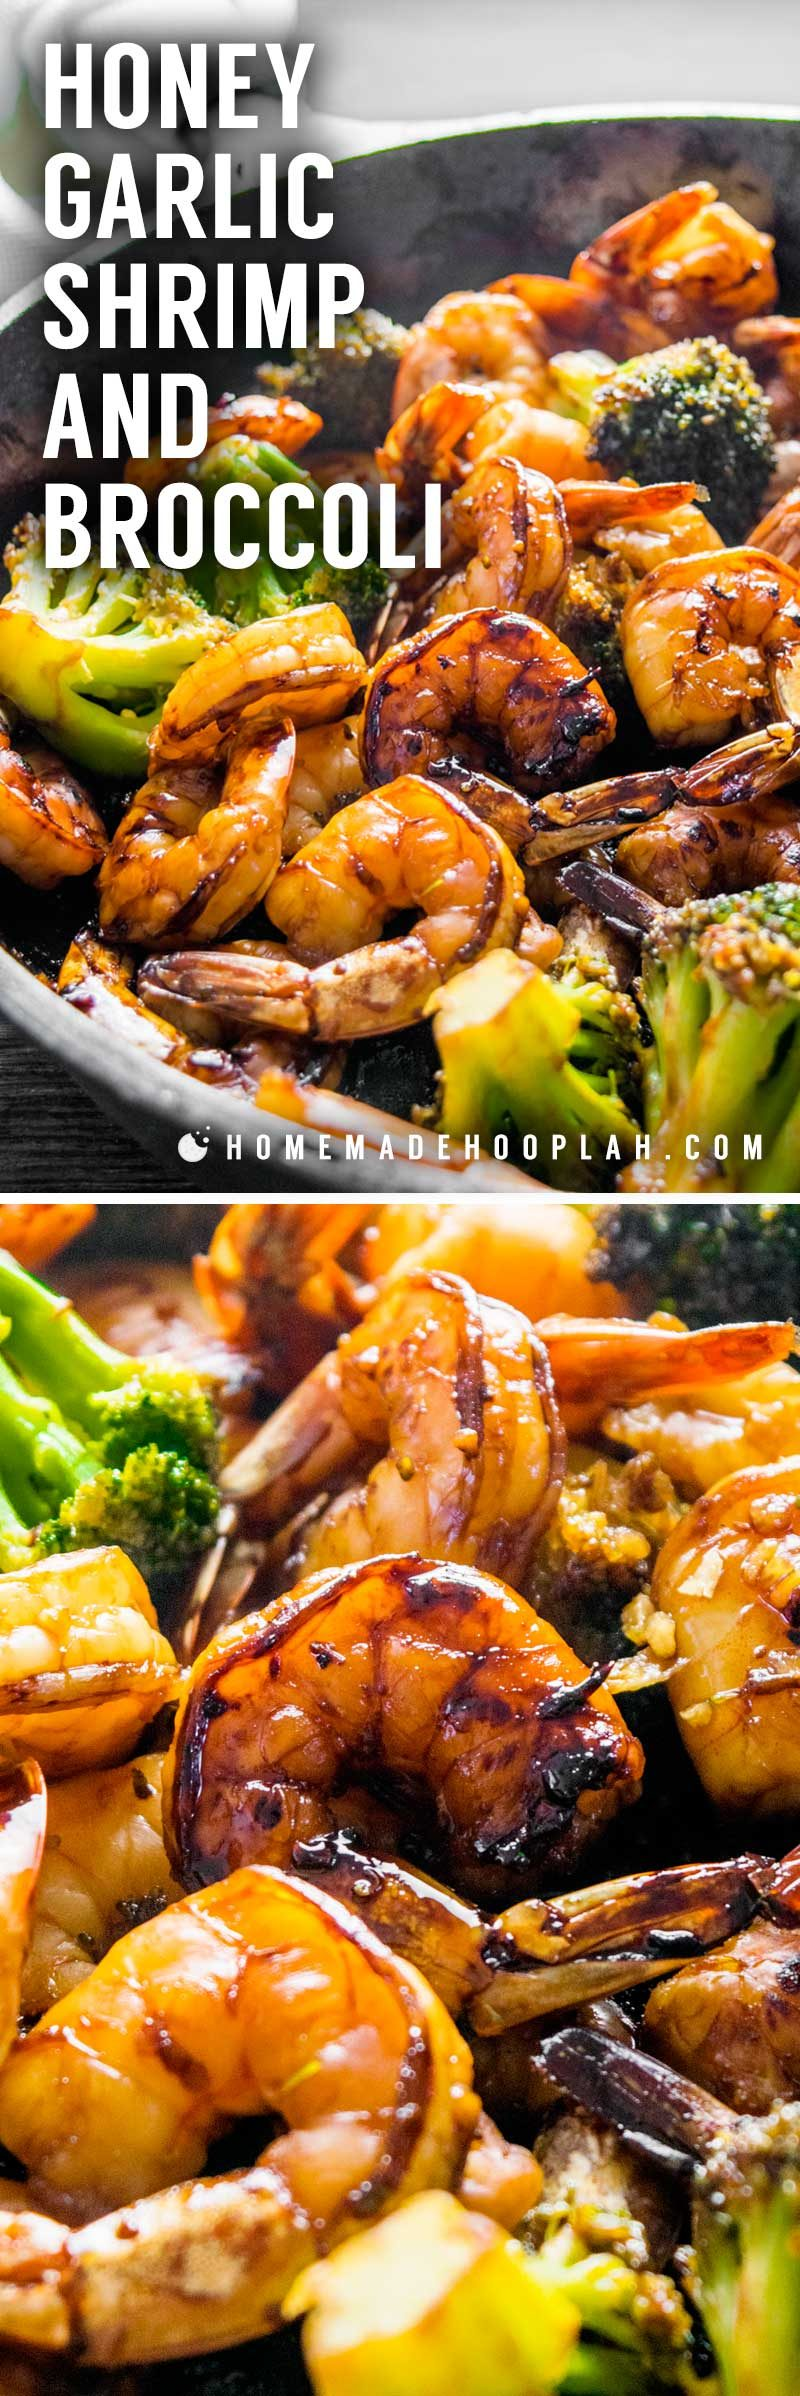 The best recipe for shrimp and broccoli fans!